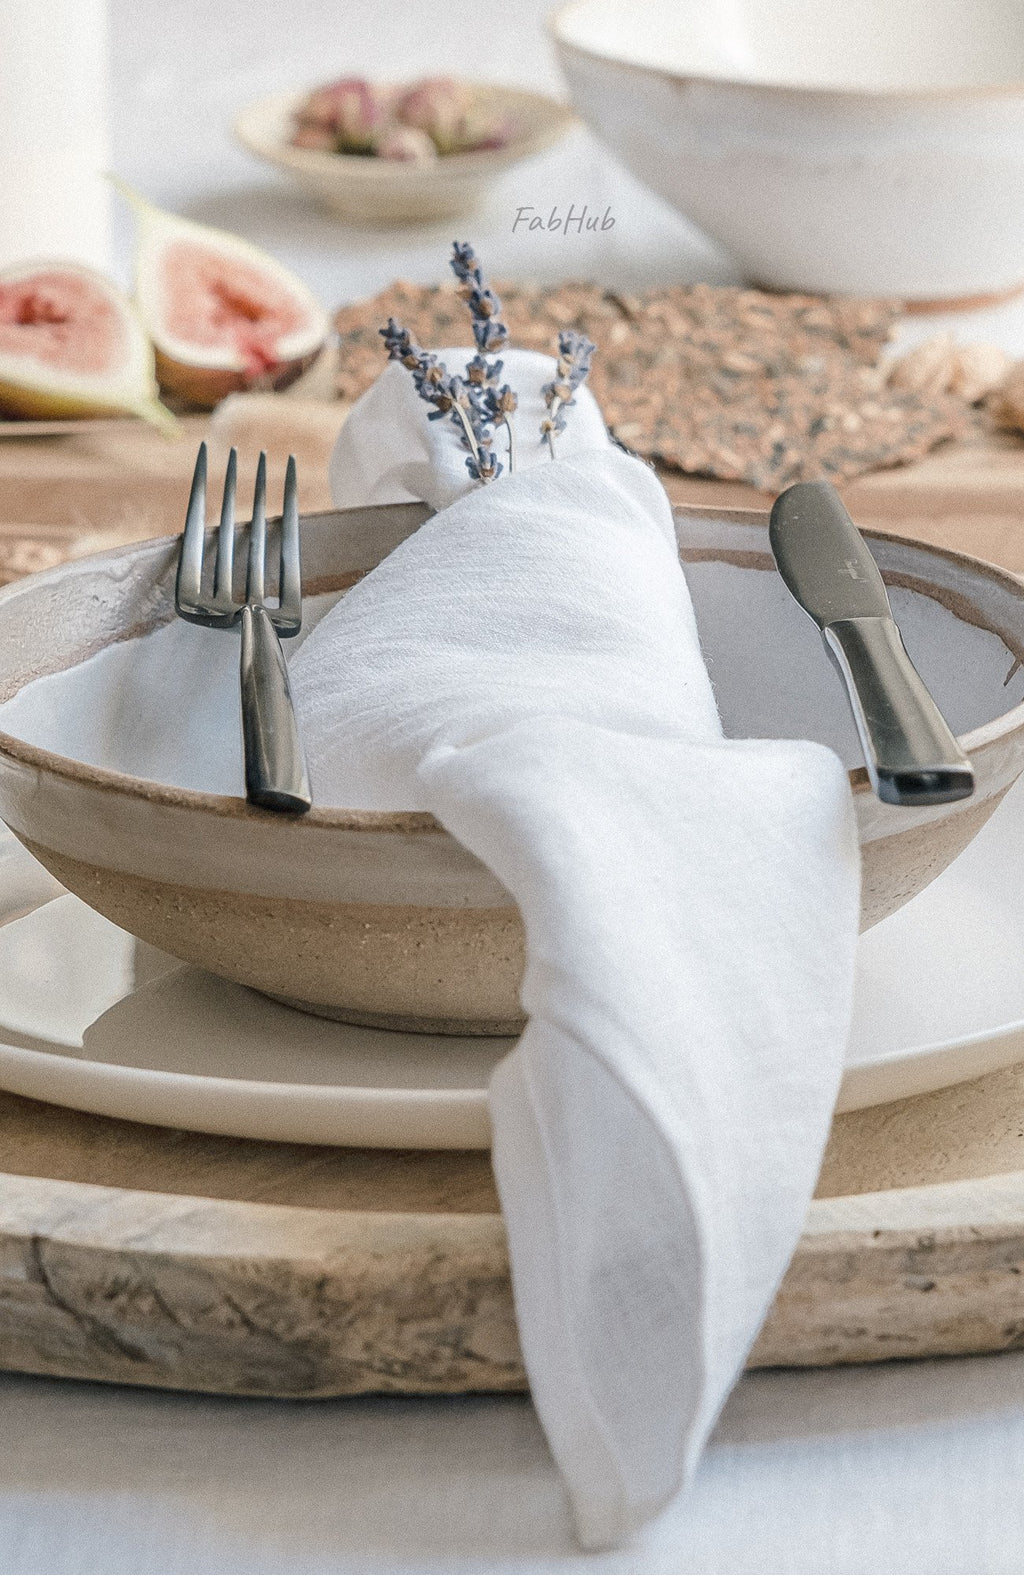 White Linen Tablecloth Set - Home Decor | Shop Baskets, Ceramics, Pillows, Rugs & Wall Hangs online